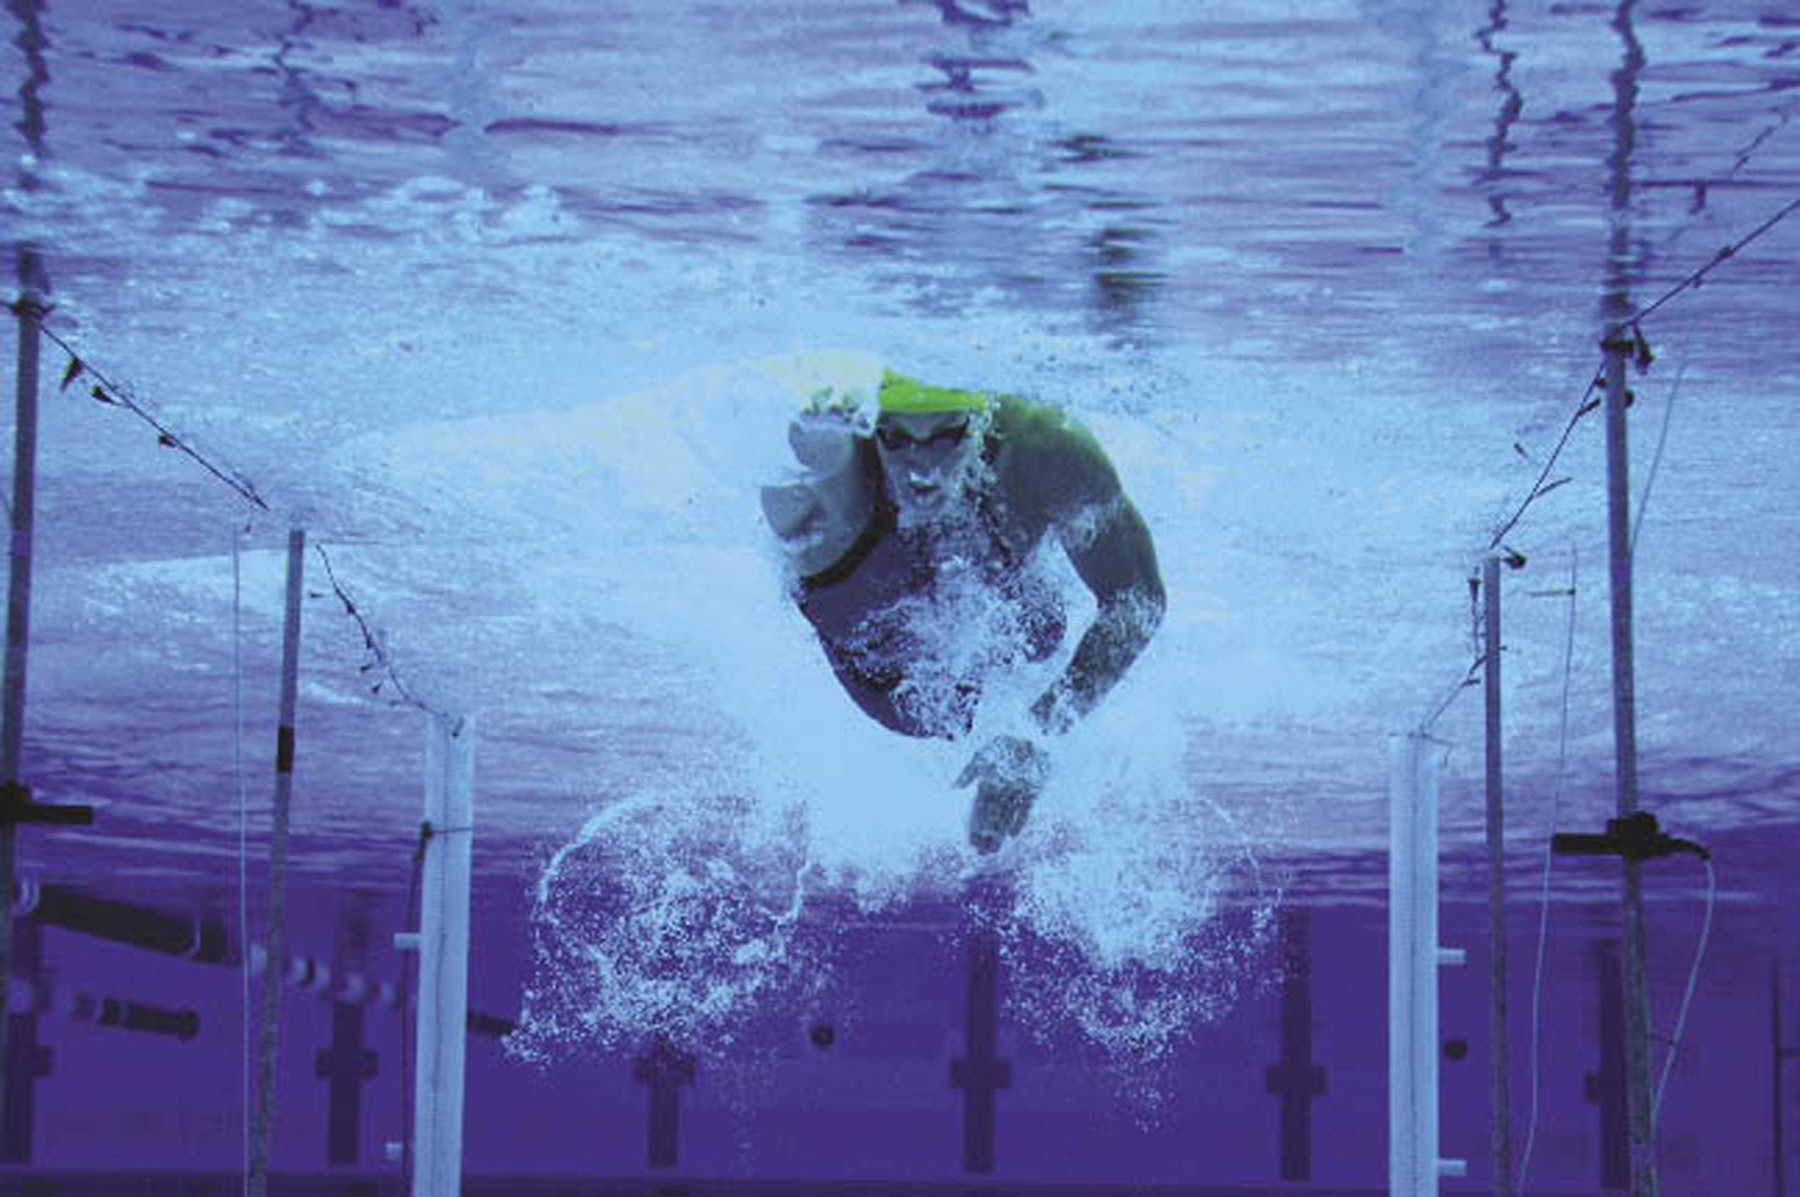 An athlete swims toward the camera.